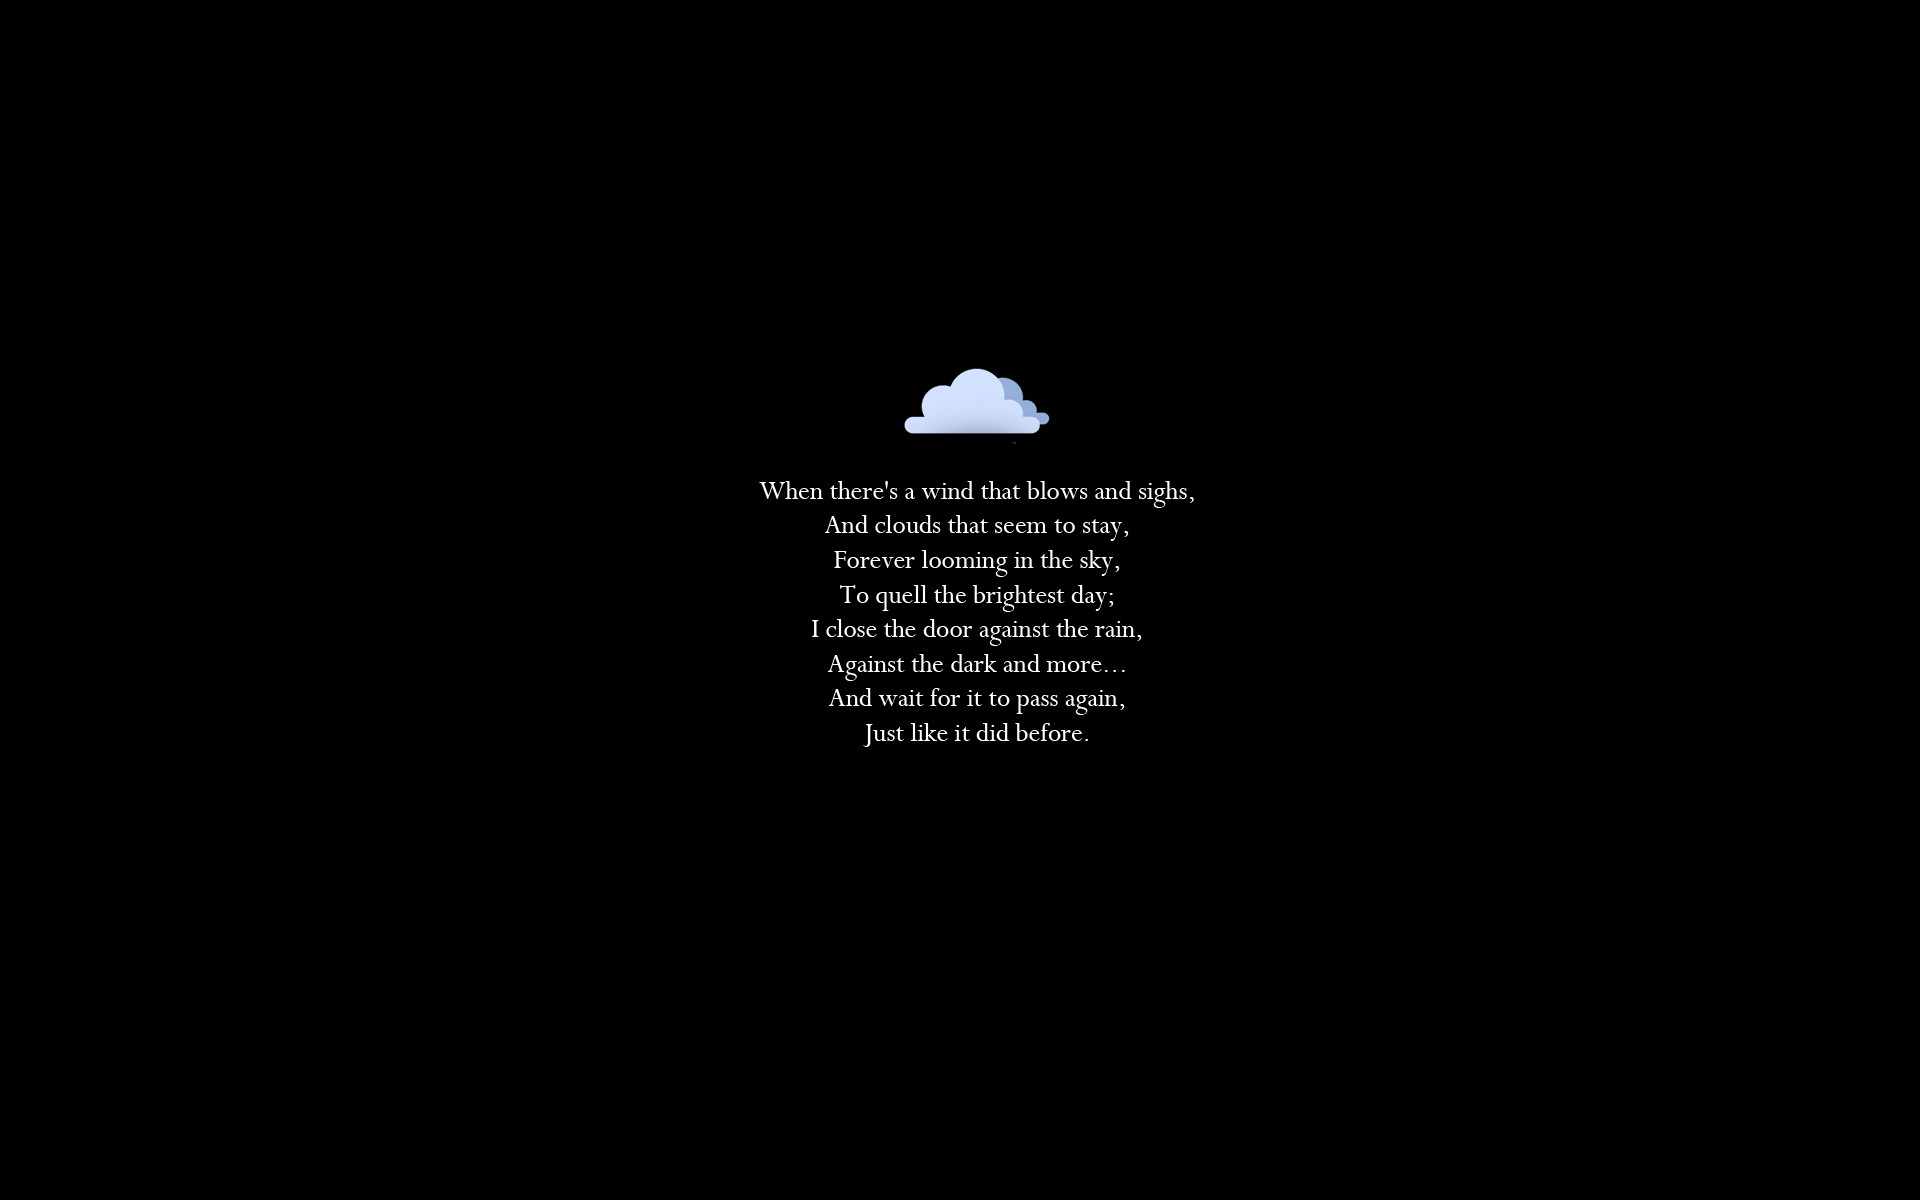 1920x1200 mood rain waiting storm poem wallpaper